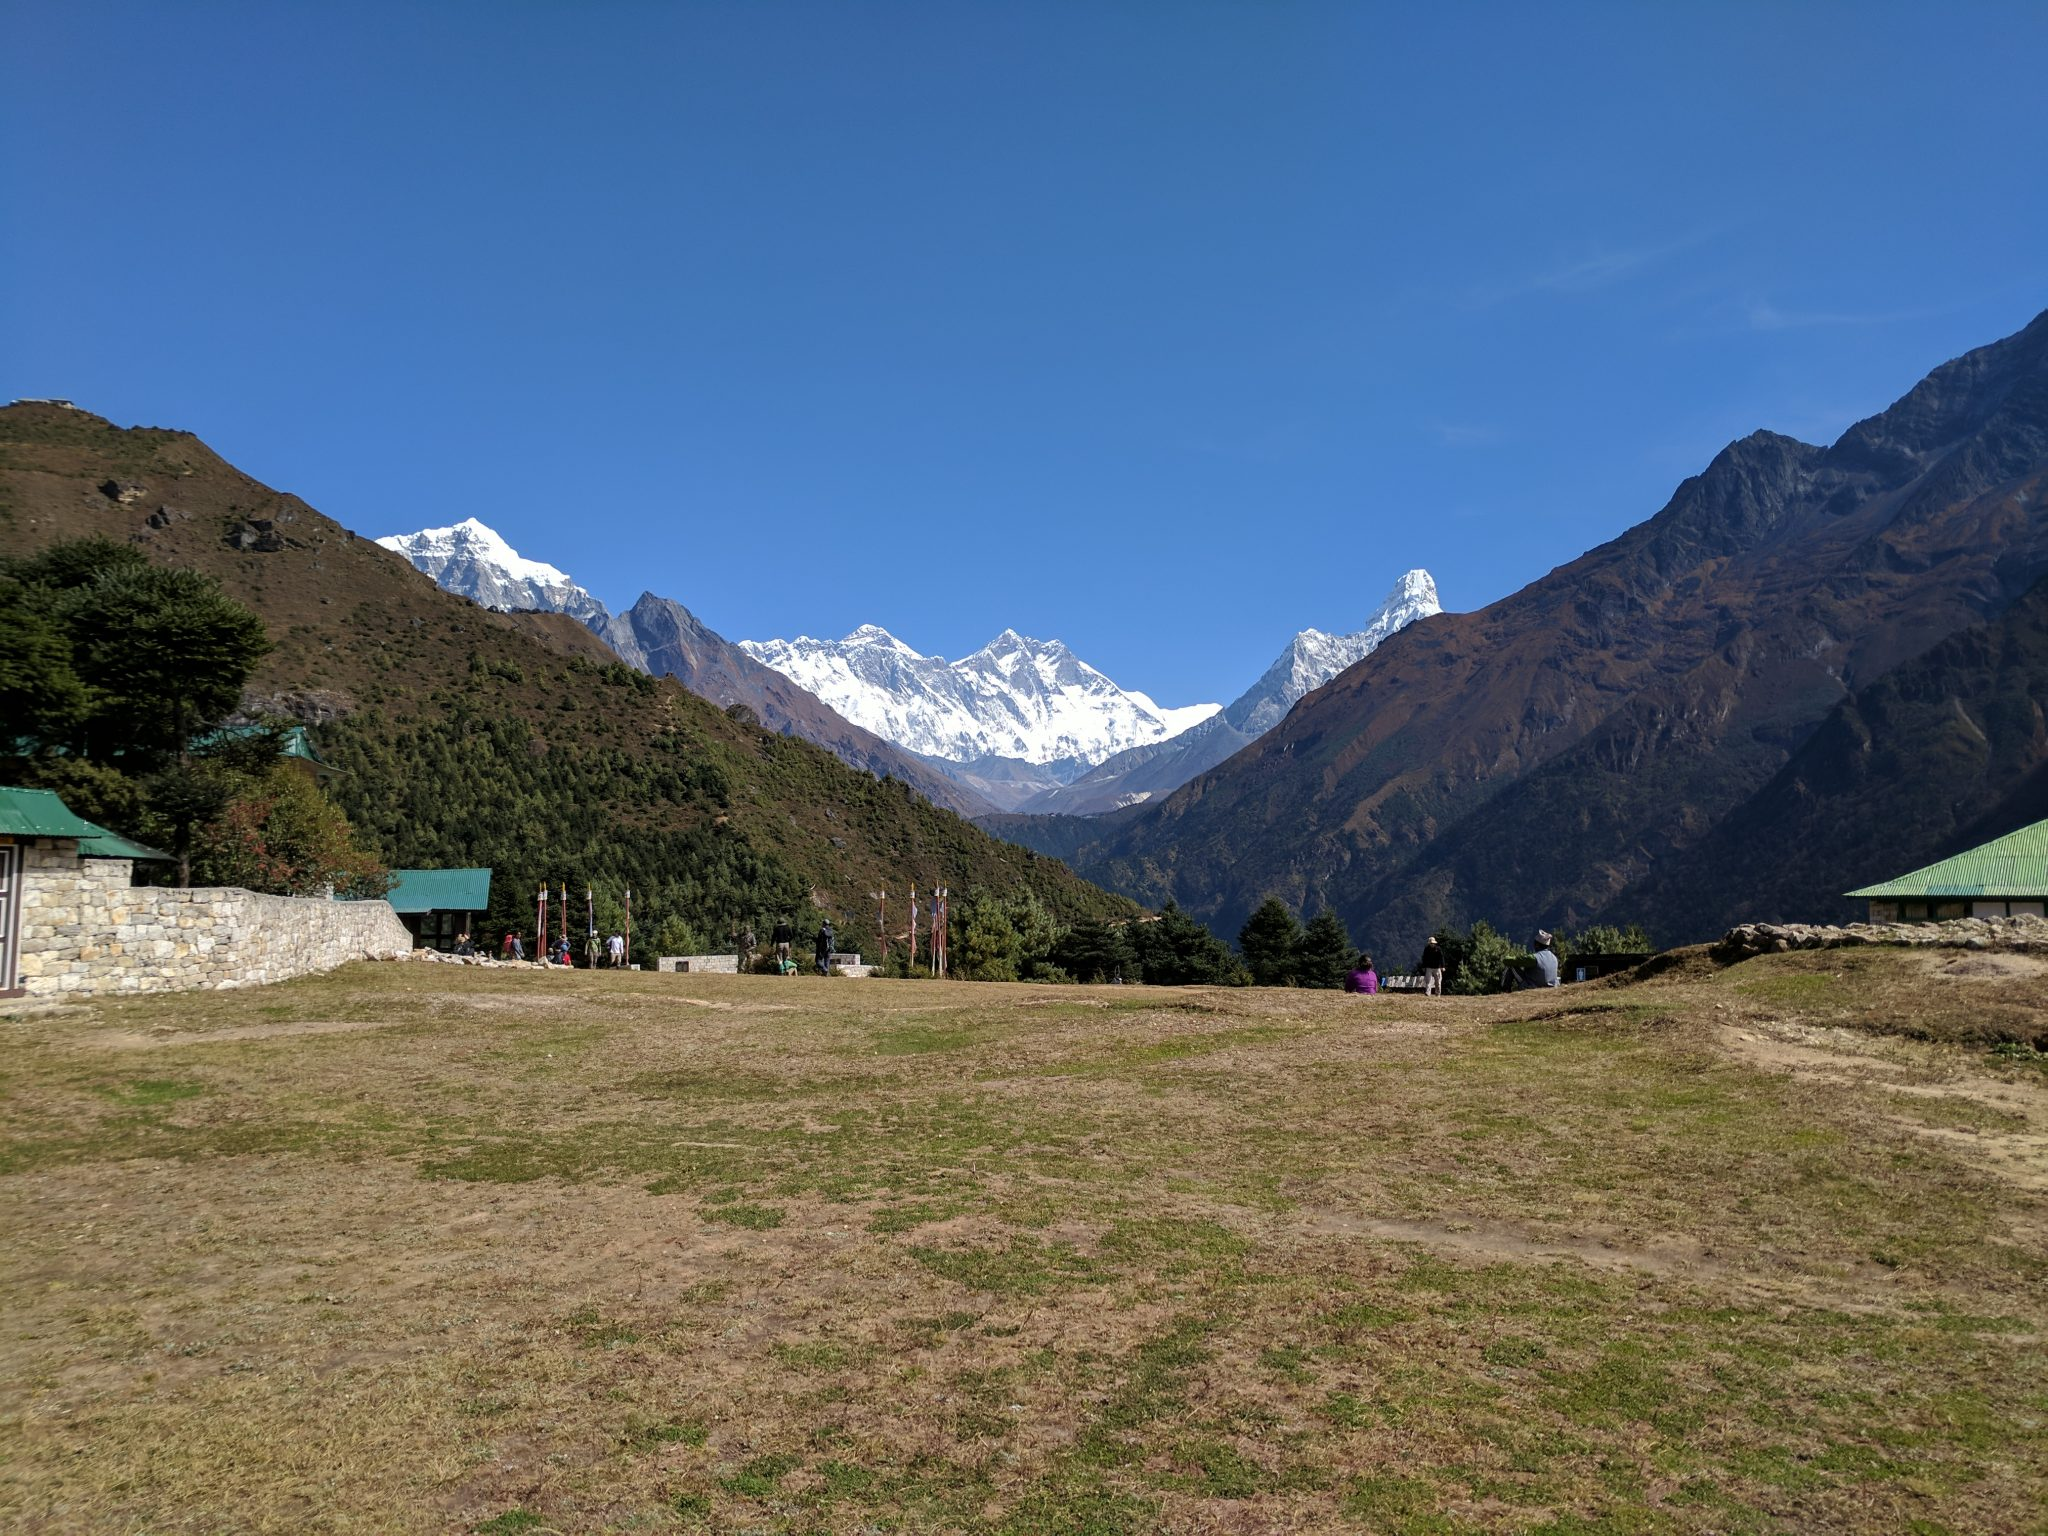 Everest as seen from Namche